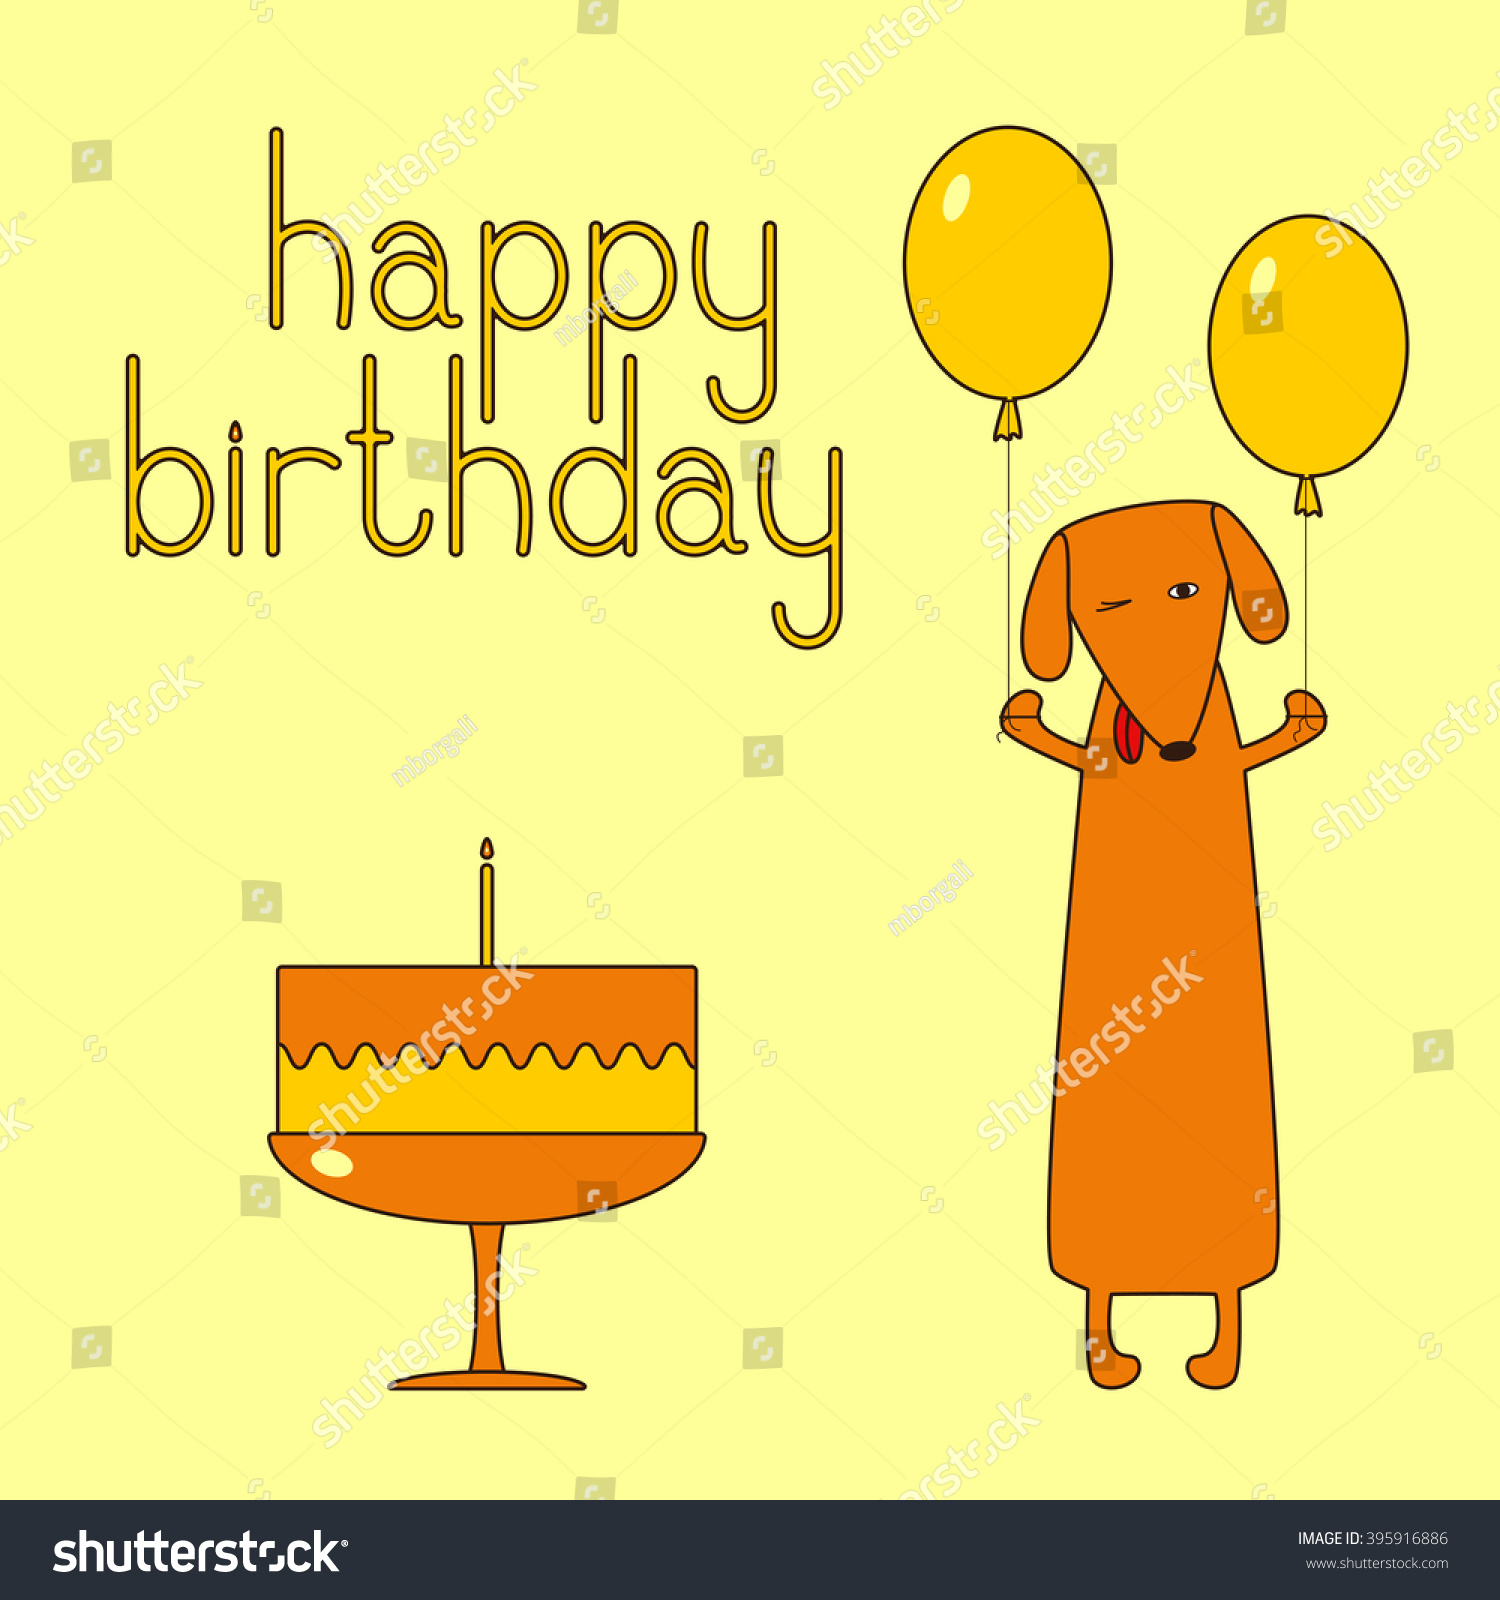 Happy birthday greeting card funny dachshund stock vector 395916886 happy birthday greeting card with funny dachshund holding two balloons cake with one candle kristyandbryce Image collections